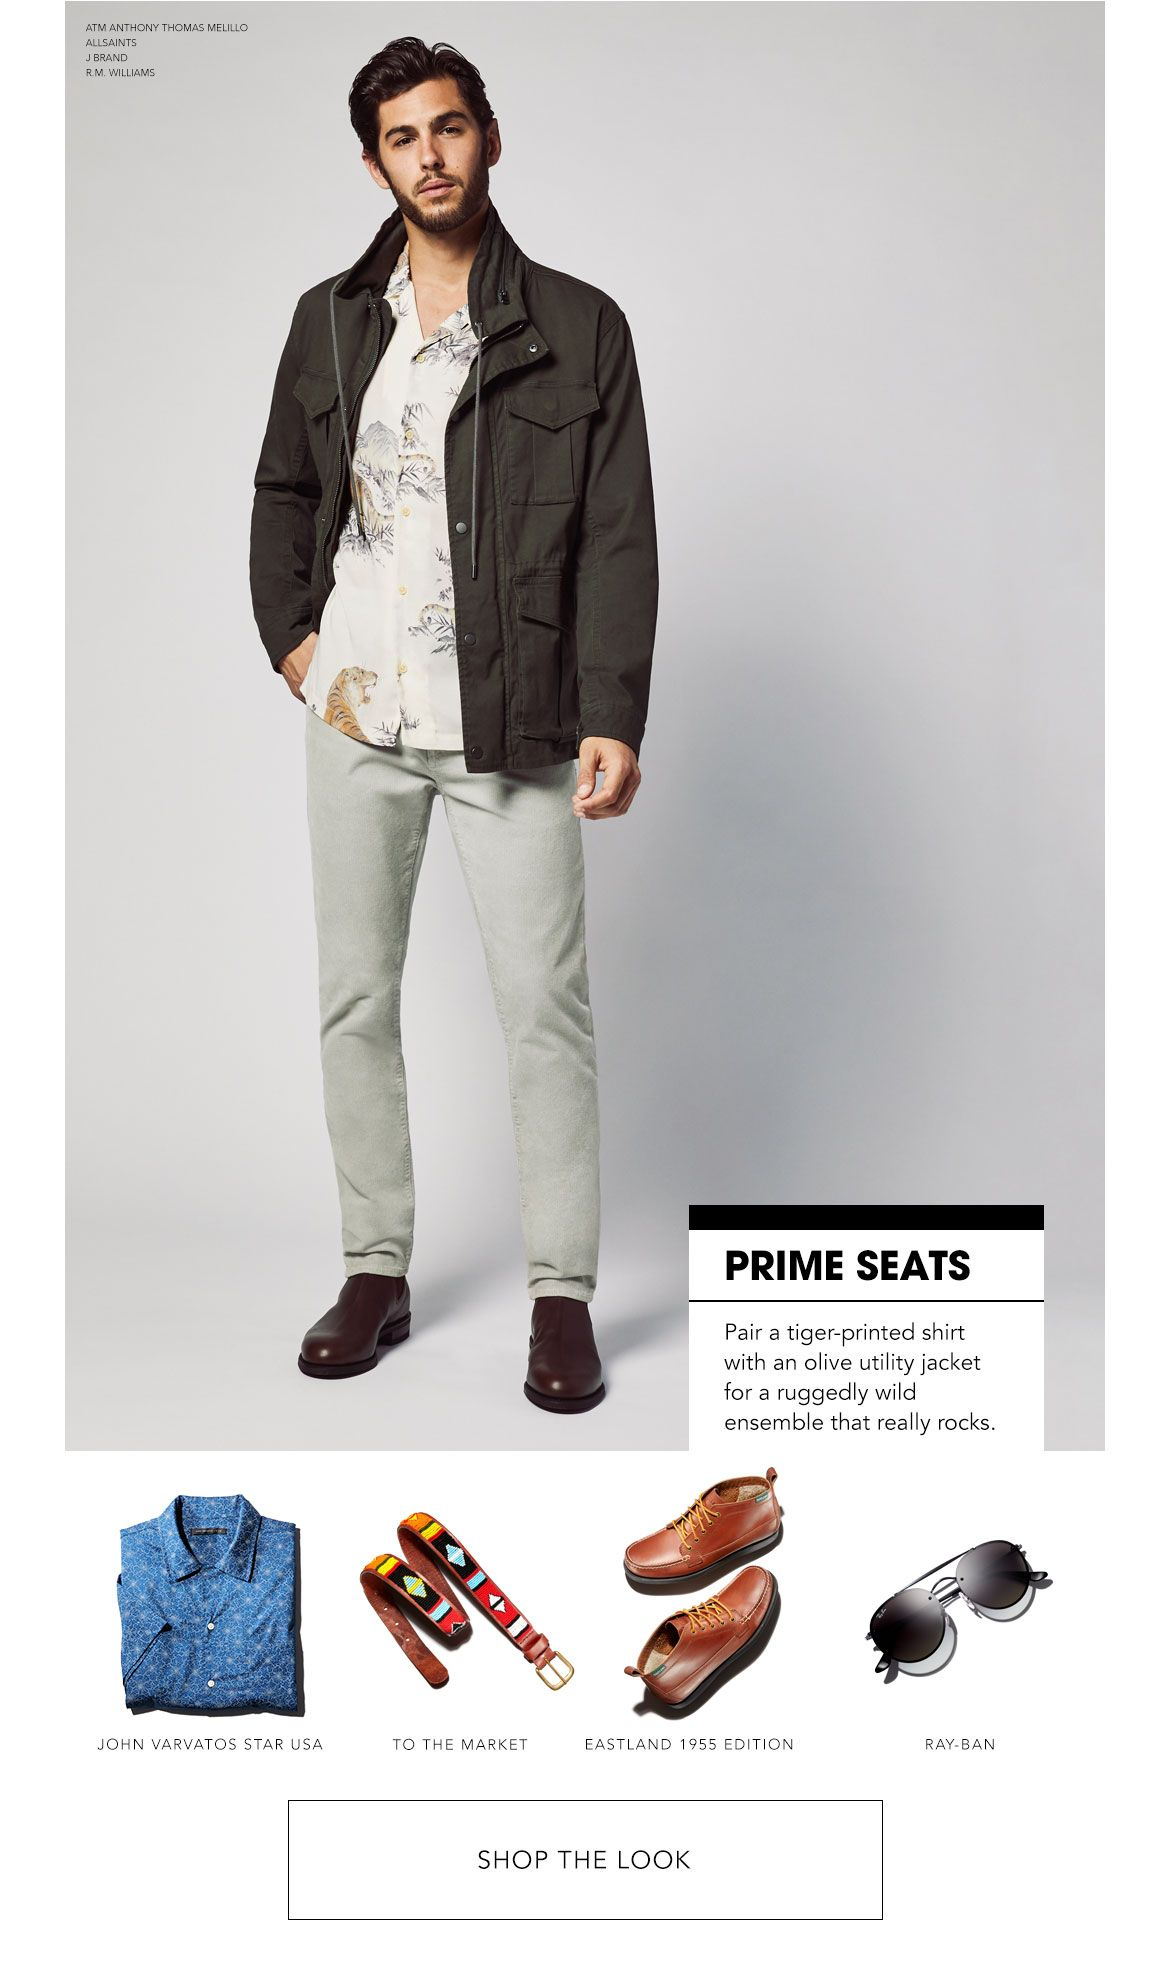 Styled for Prime Seats